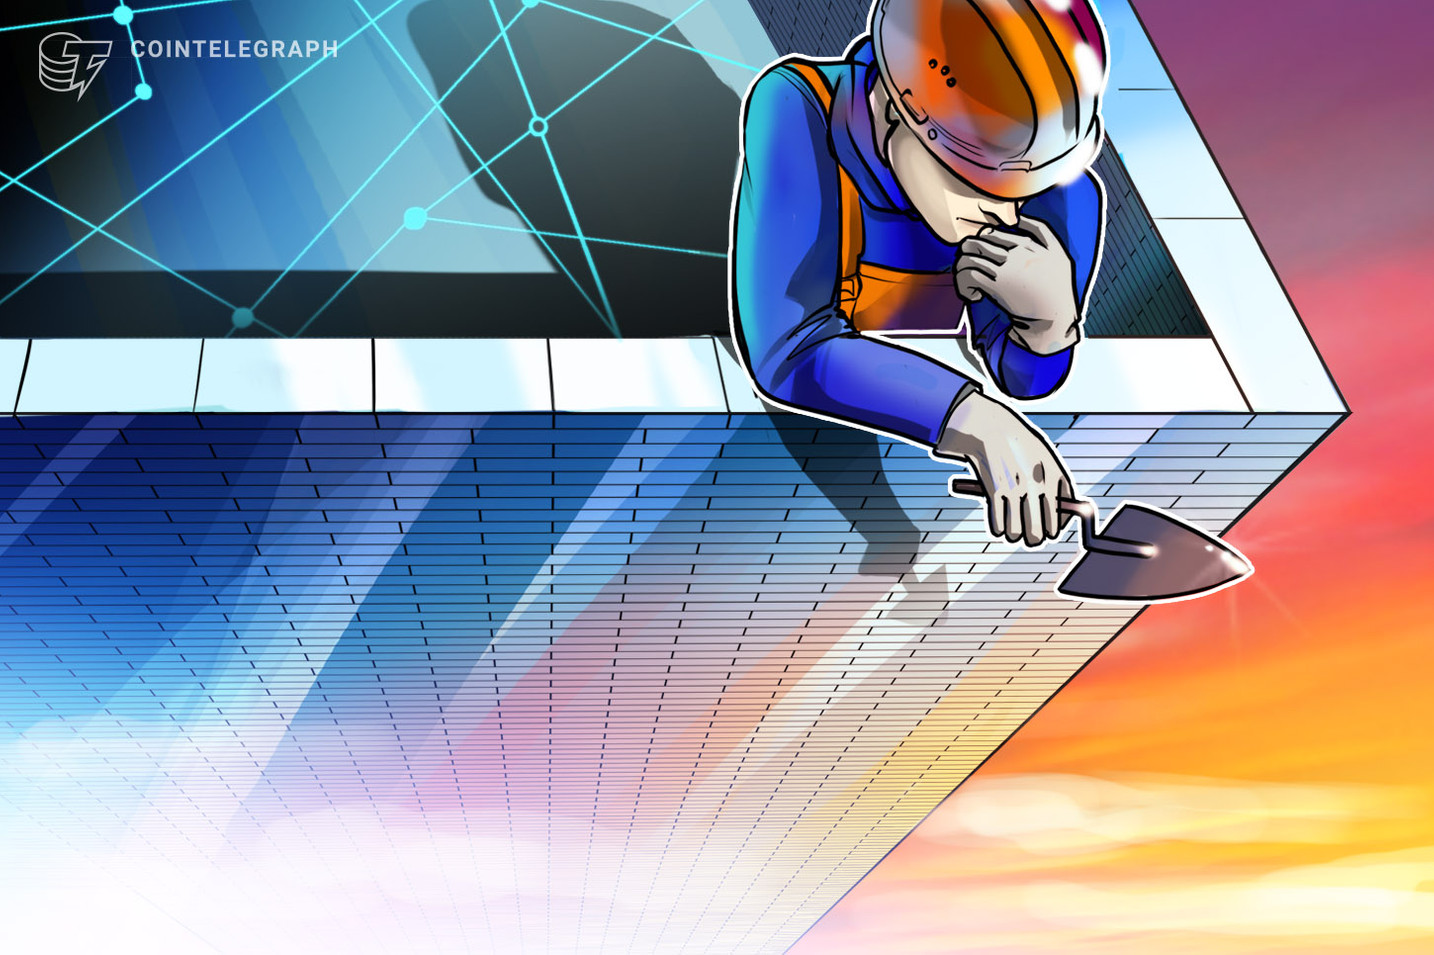 Canadian border town suspends Bitcoin mining over aesthetic concerns